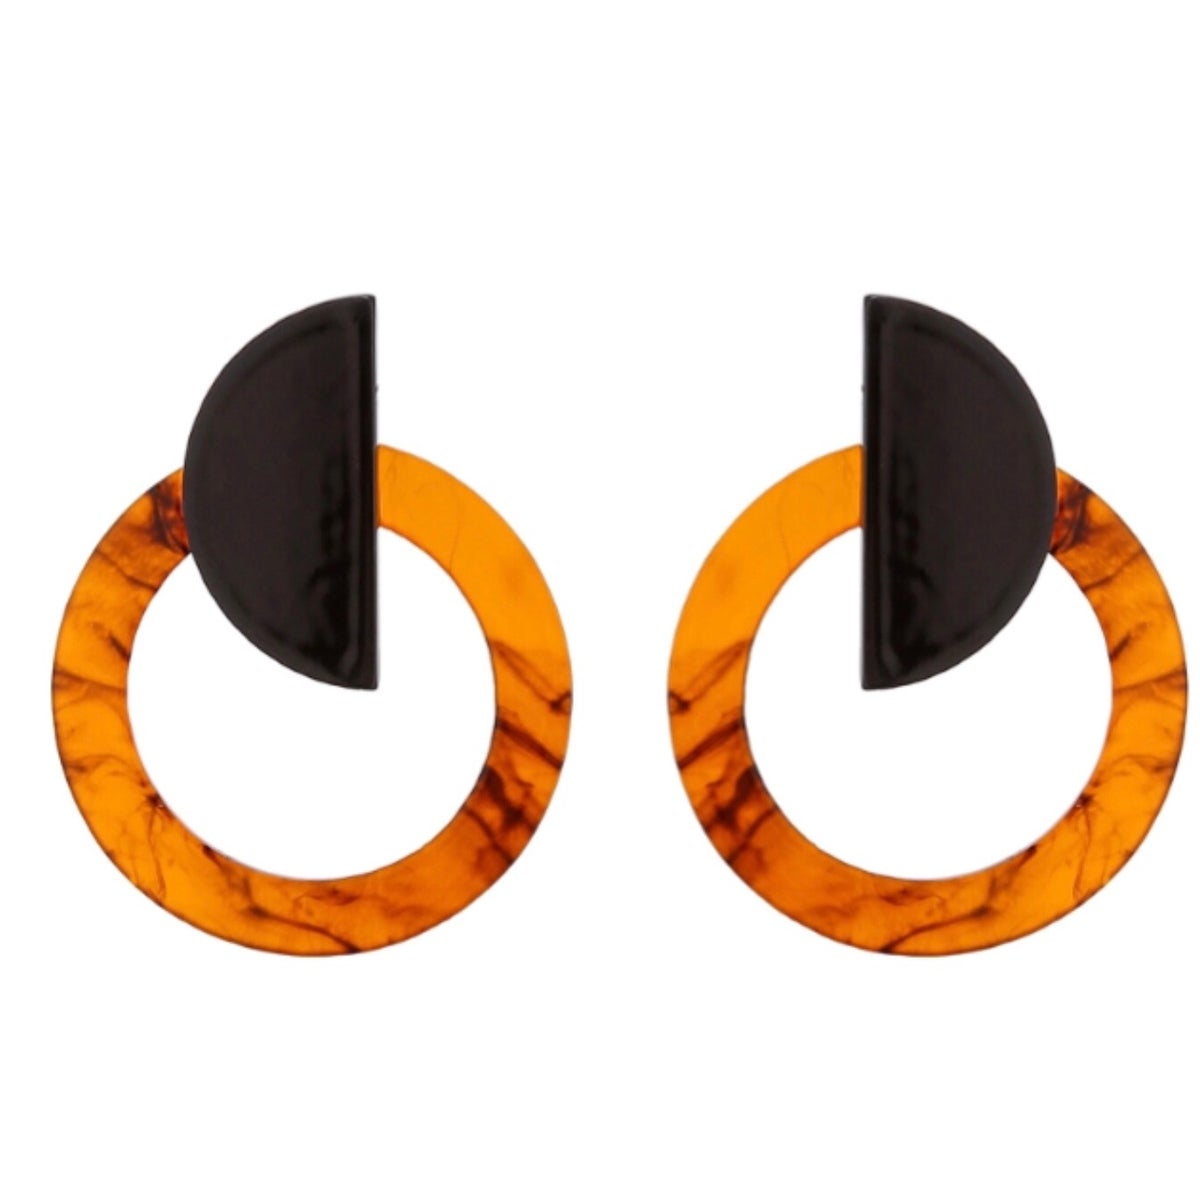 Image of Black and Tortoiseshell Statement Earrings